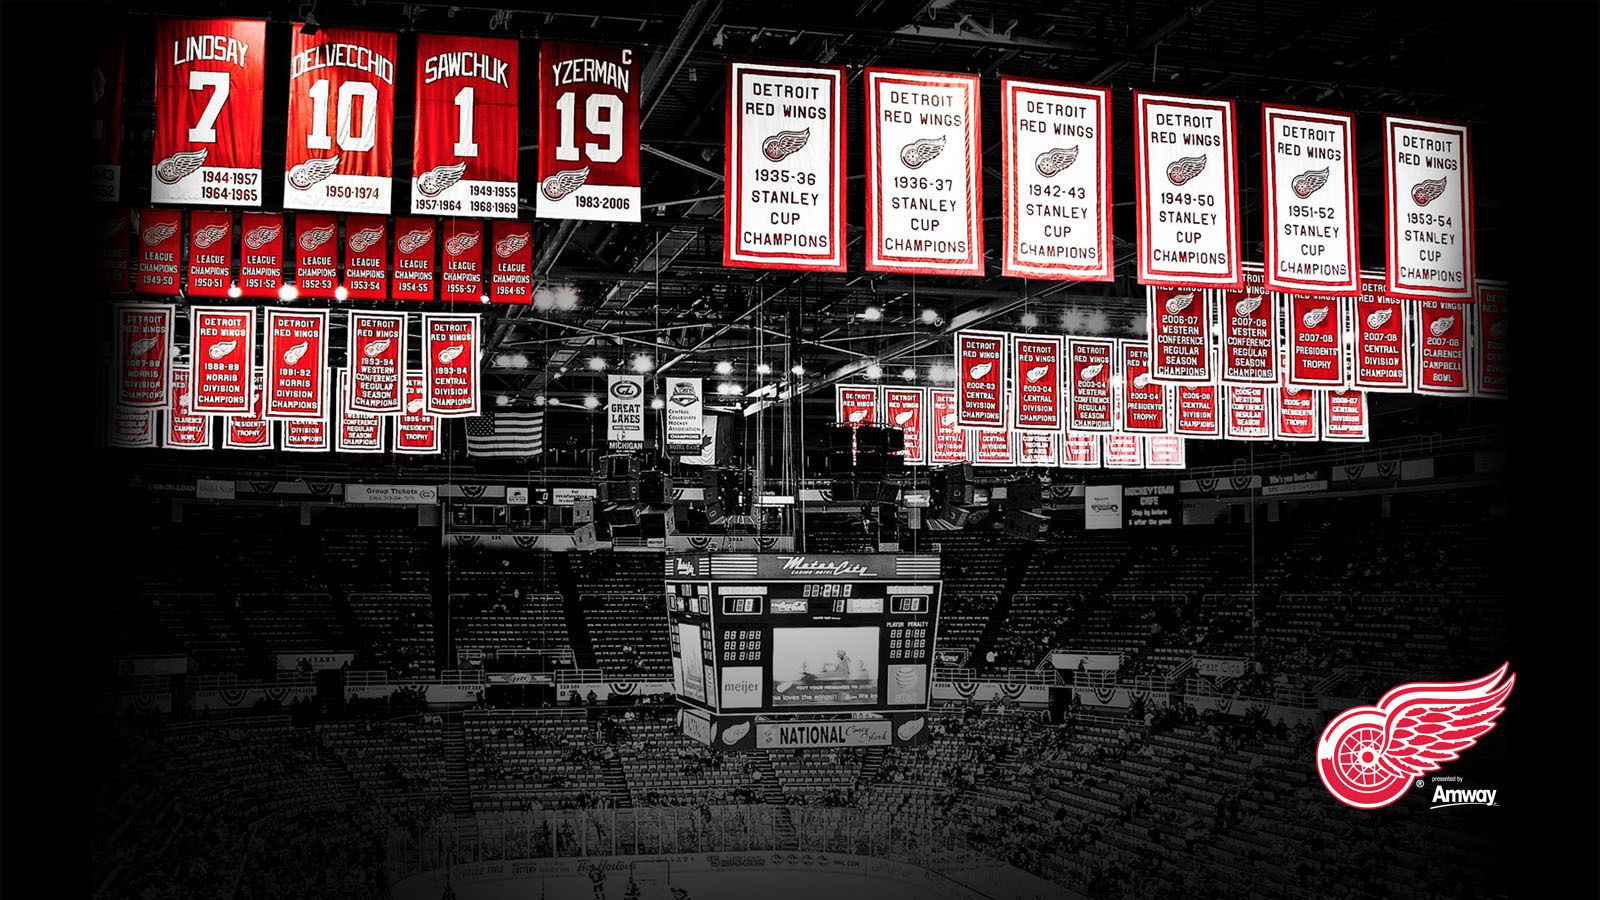 DG Du Mois D'Août (Snitch88) - Page 2 Detroit-red-wings-wallpaper-38